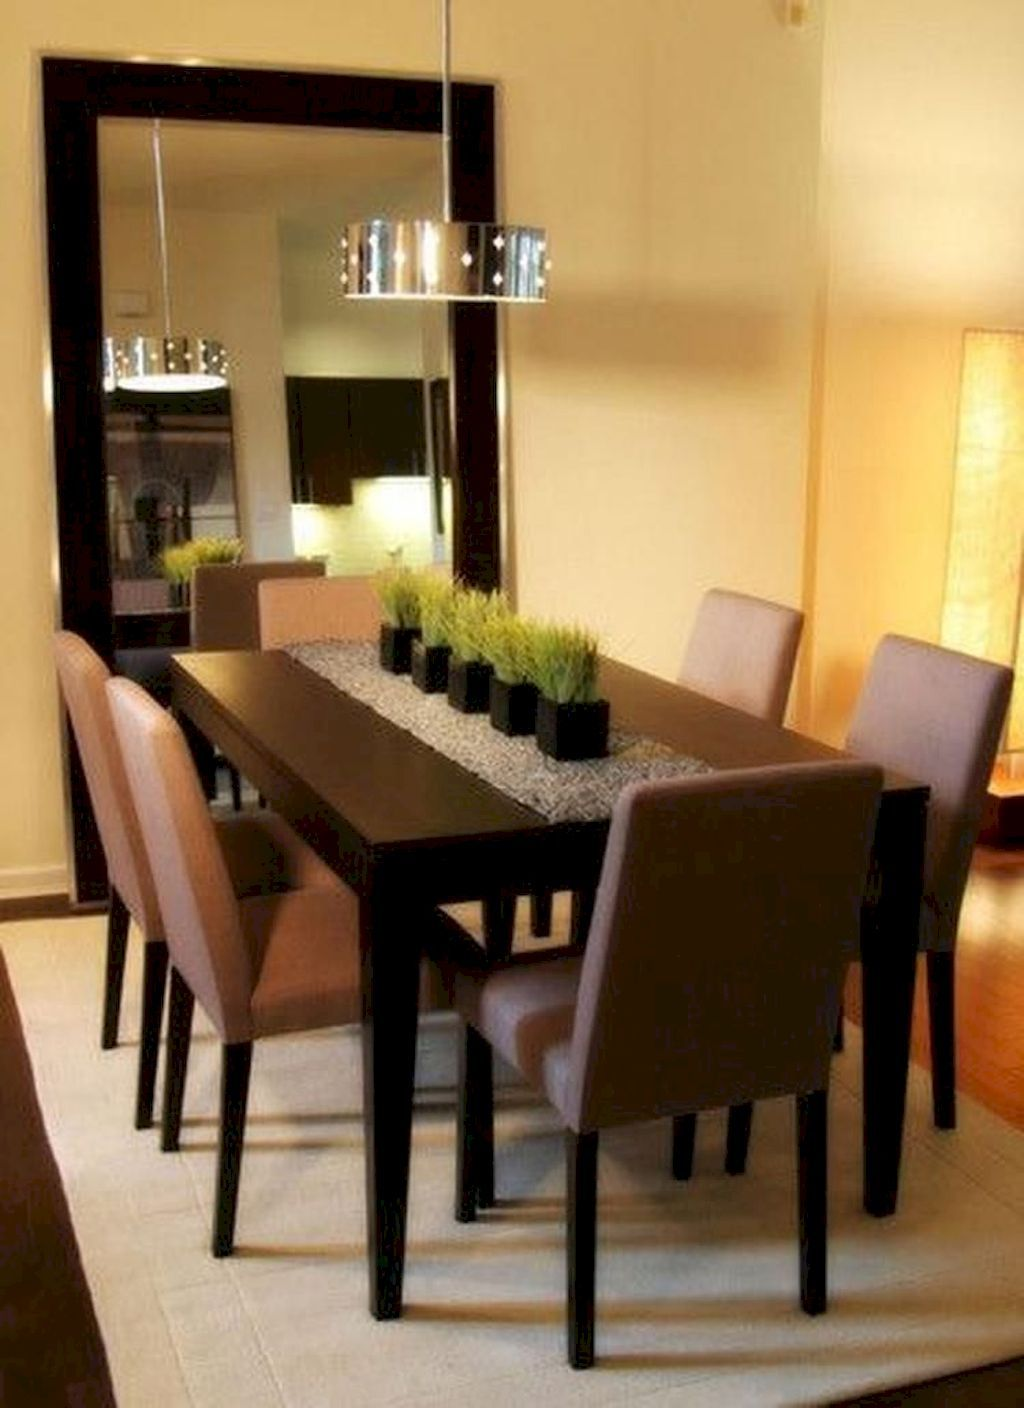 Sumptuous Suggestions For Making A Stunning Dinner Occasion Centerpiece Dining Room Table Decor Dining Table Centerpiece Fine Dining Room